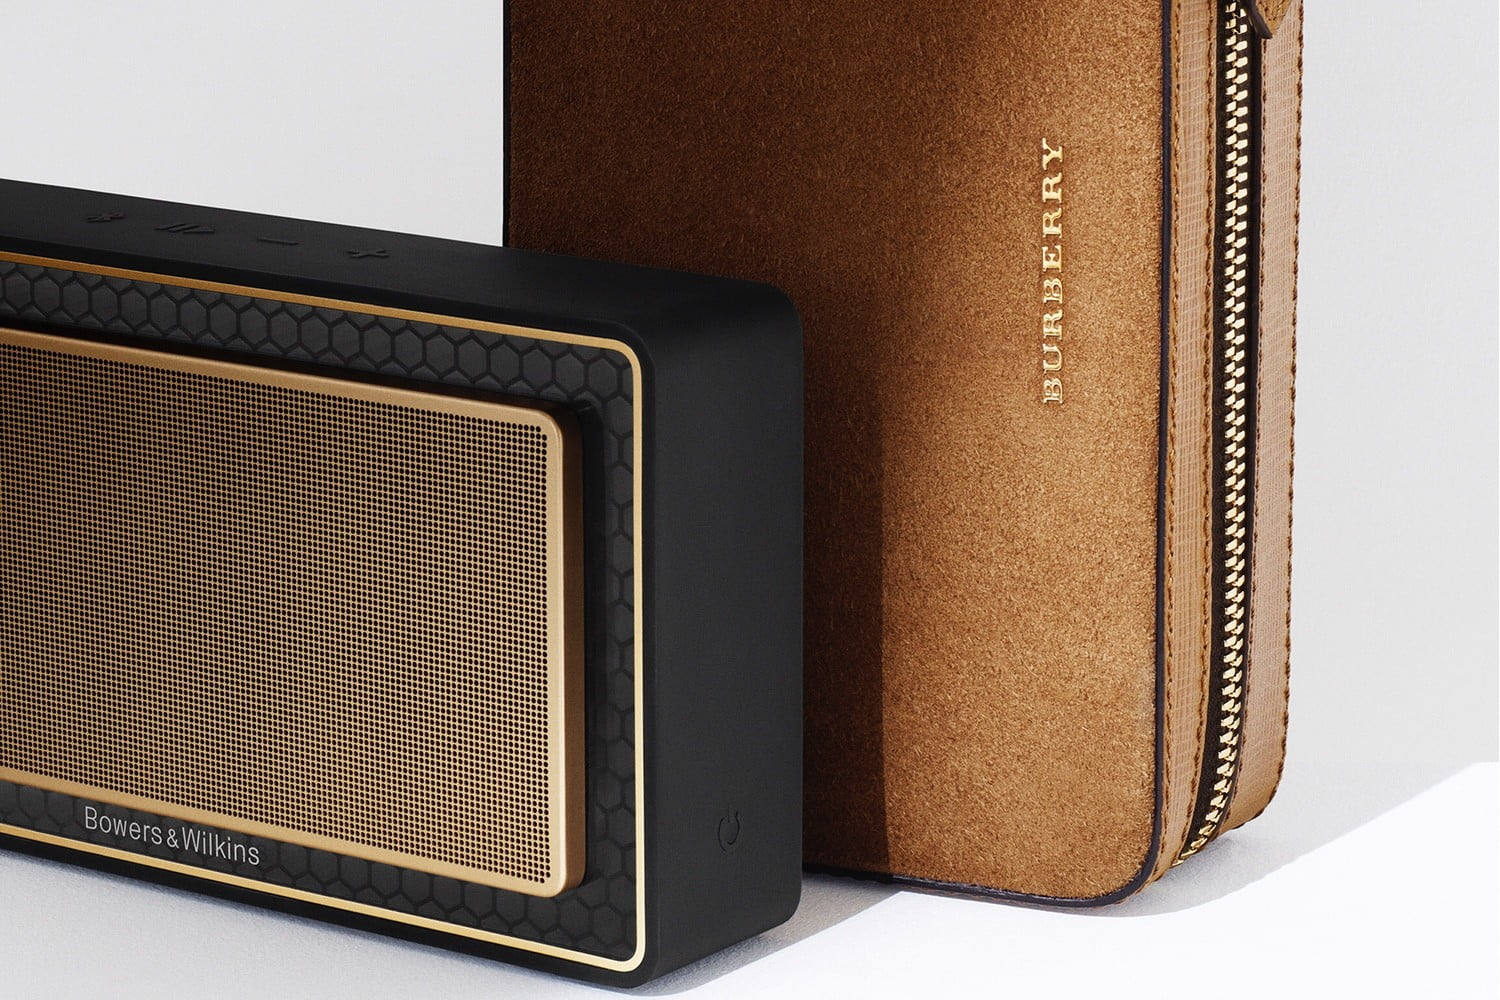 bowers wilkins burberry t7 bluetooth speaker and gold edition 1